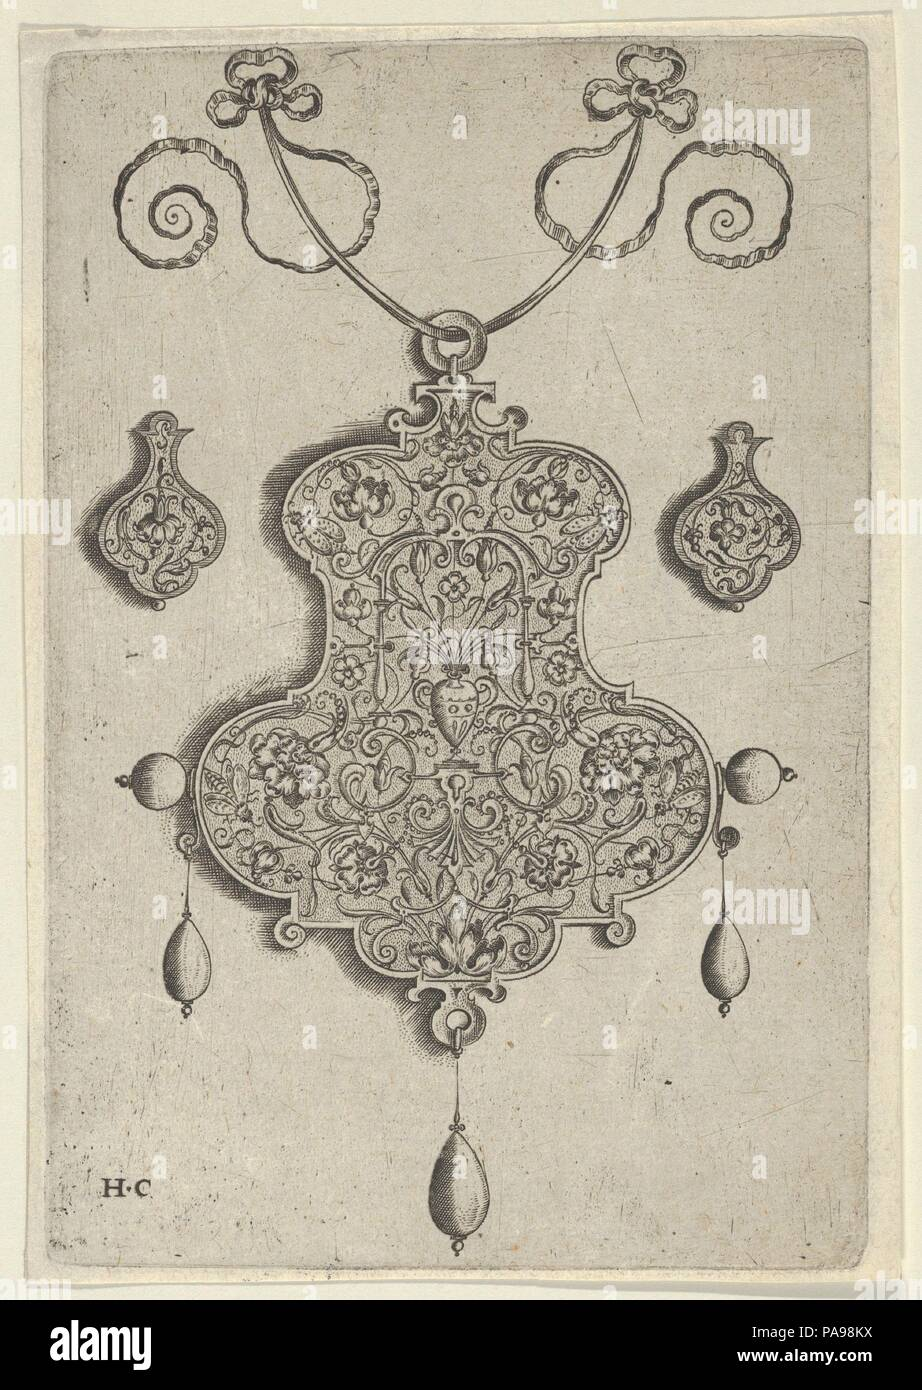 Design for the Verso of a Pendant with a Vase at Center. Artist: Jan Collaert I (Netherlandish, Antwerp ca. 1530-1581 Antwerp). Dimensions: Sheet: 5 7/8 × 4 1/16 in. (14.9 × 10.3 cm). Publisher: published by Hans Liefrinck (Augsburg (?) 1518?-1573 Antwerp) , in Antwerp. Series/Portfolio: Pendant Designs with Deities in Niches and Flower-Arabesques. Date: before 1573.  Vertical panel with the design for a pendant verso at center. The ornament is decorated with a flower-arabesque pattern inhabited by insects, with a vase and bouquet under a strapwork frame at center. Flanking the central motif a - Stock Image